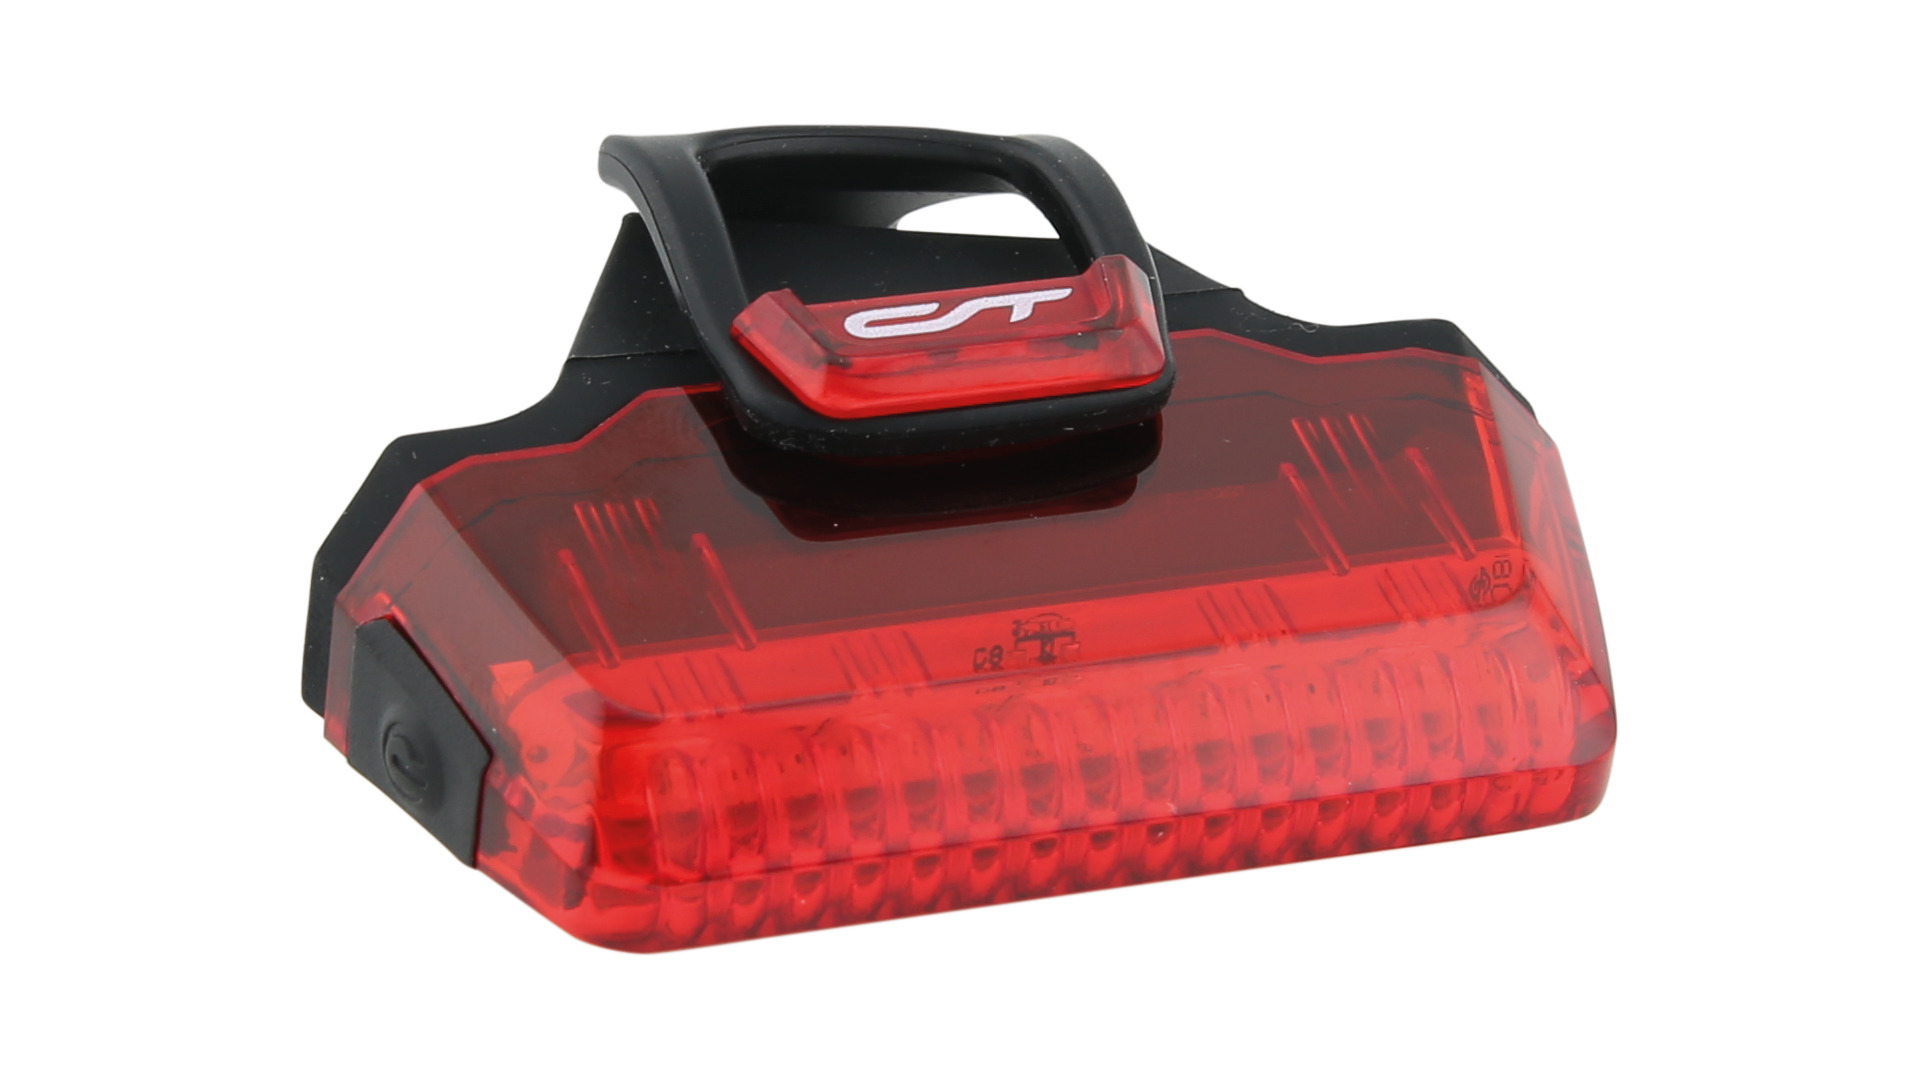 Contec Rear Light Speed-LED 7LED 1xAAA with Holder